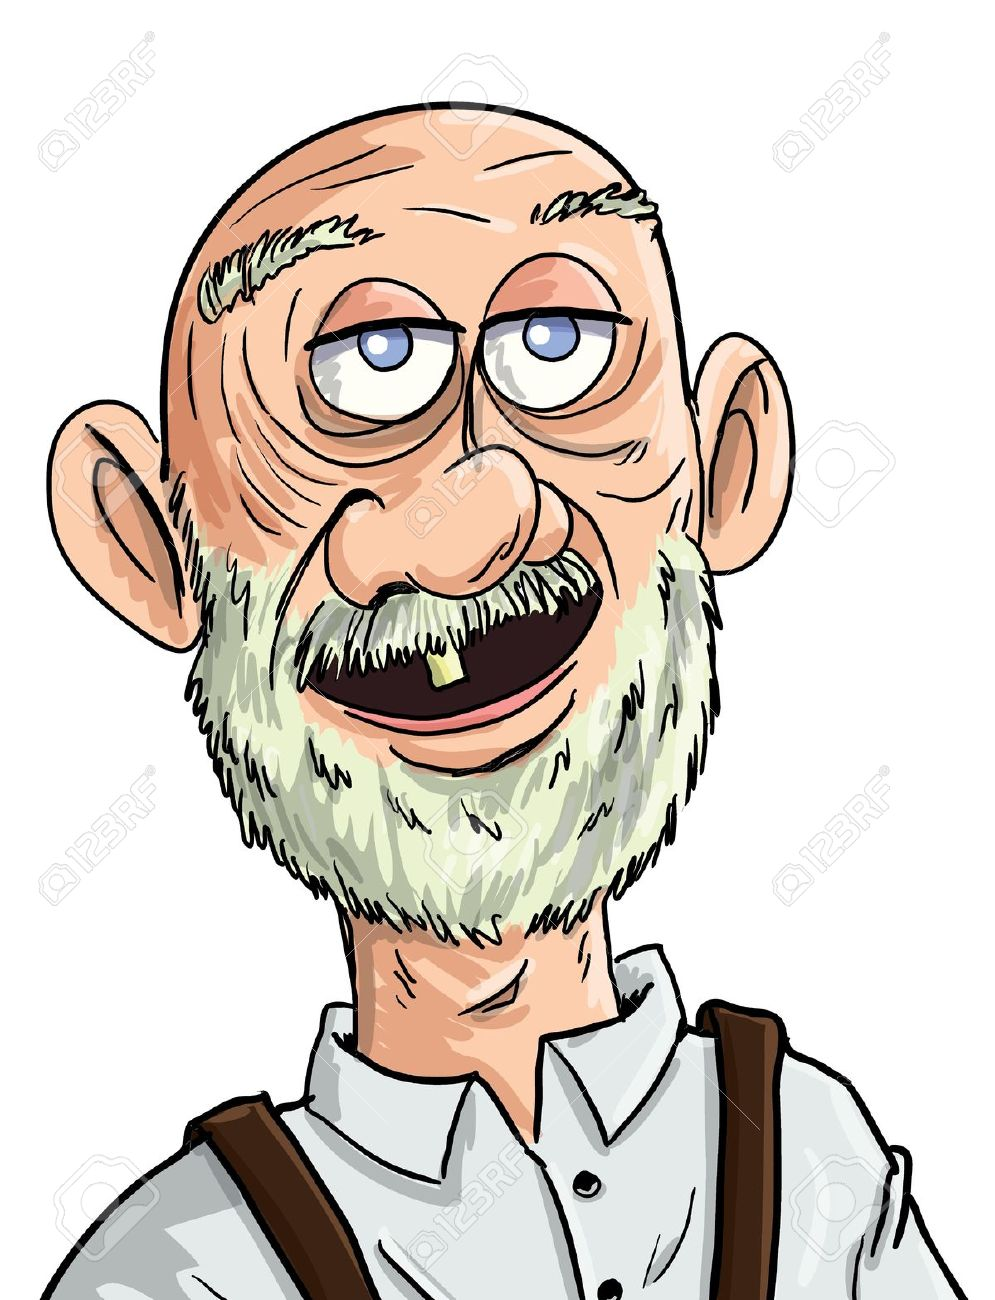 Old man laughing clipart banner library Laughing old man clipart - ClipartFox banner library